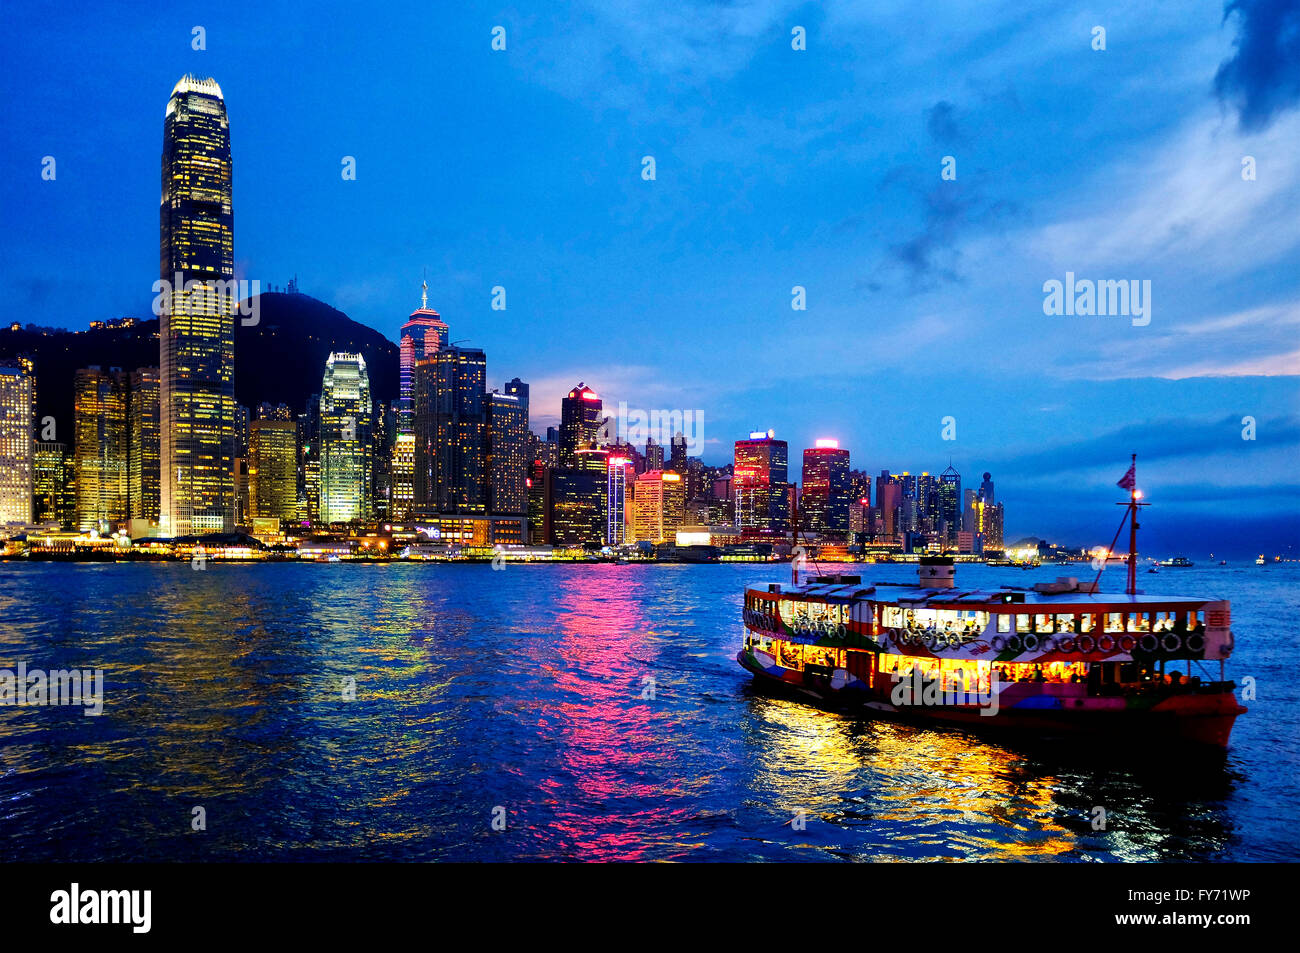 A star ferry in the Victoria Harbour, Hong Kong, China - Stock Image